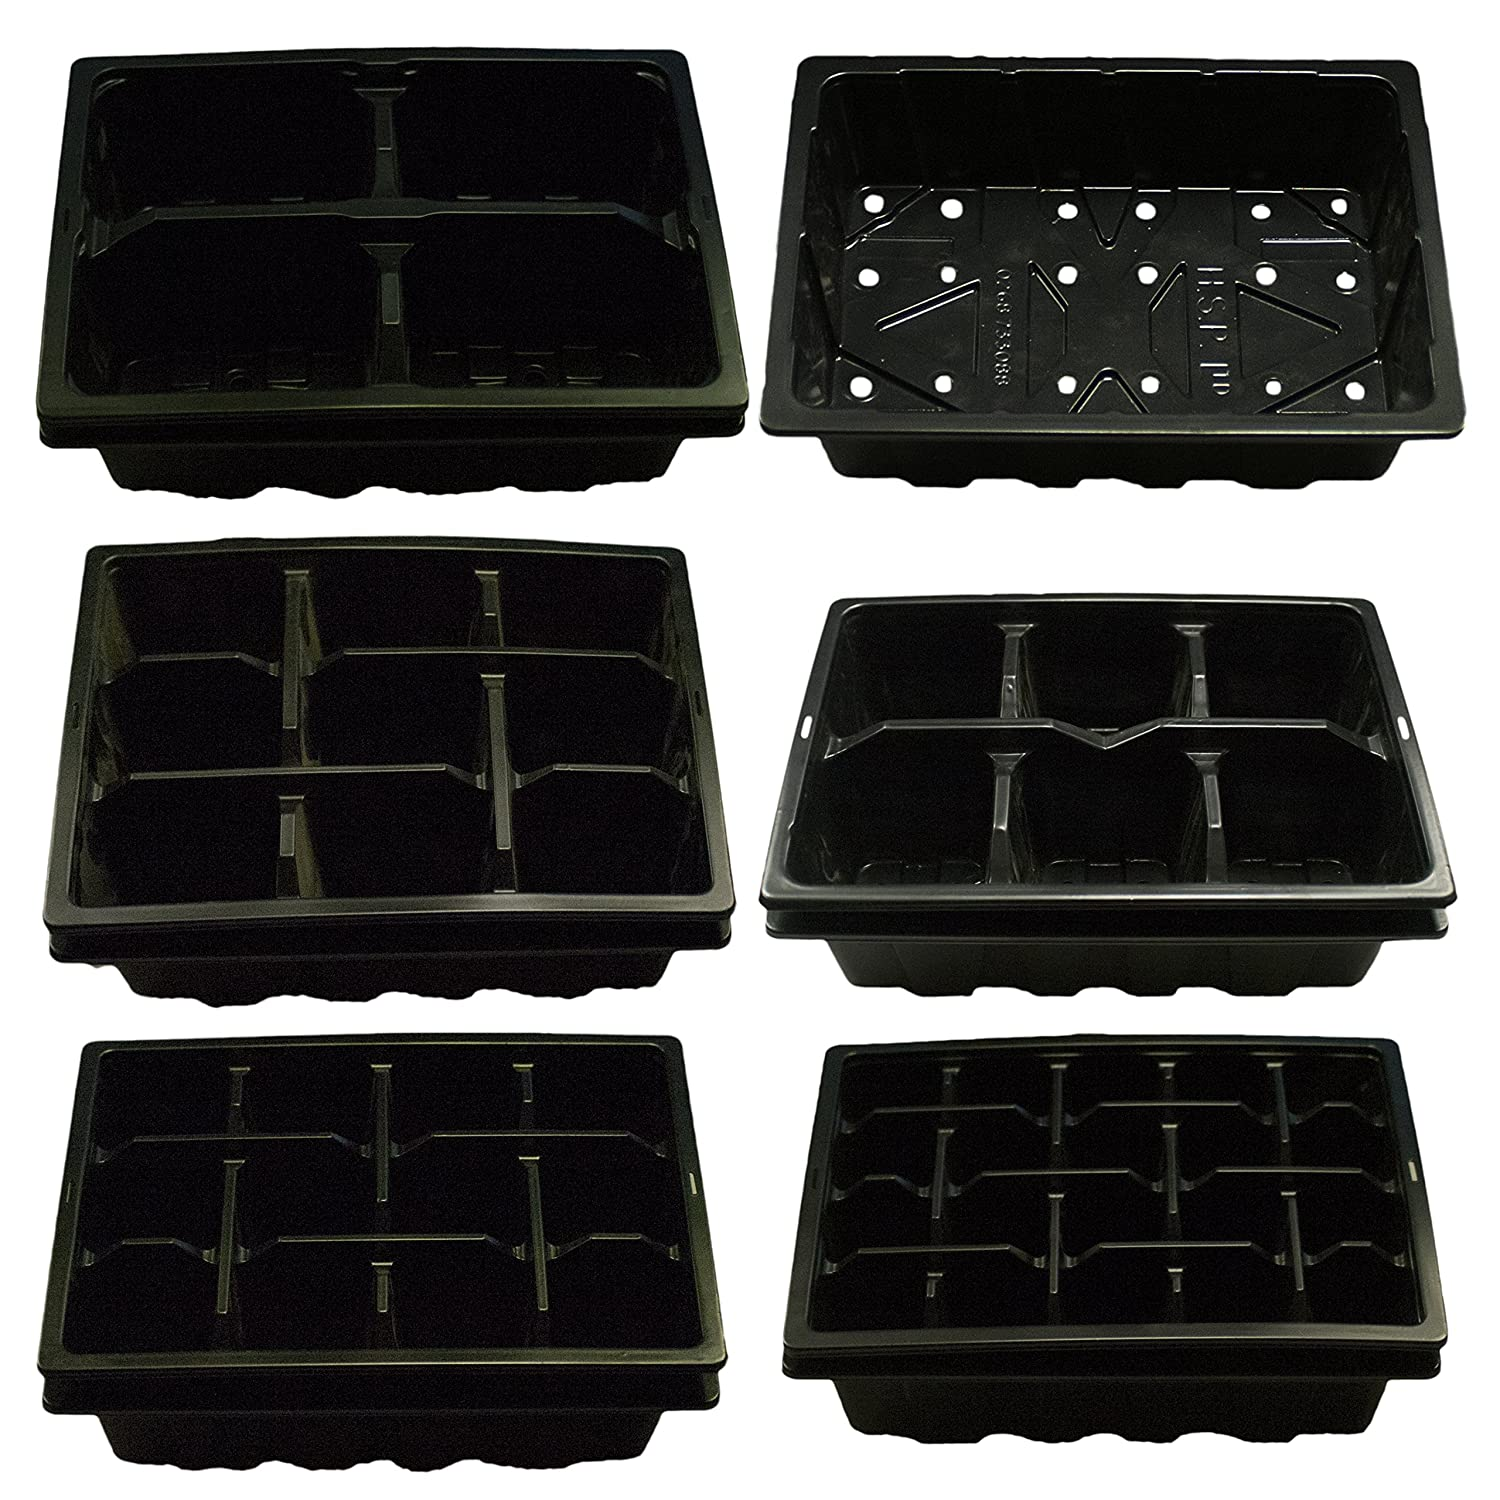 Elixir Gardens ® Half Size Seed Trays Greenhouse | Optional Lids | Cell Packs 4,6,9,12,25